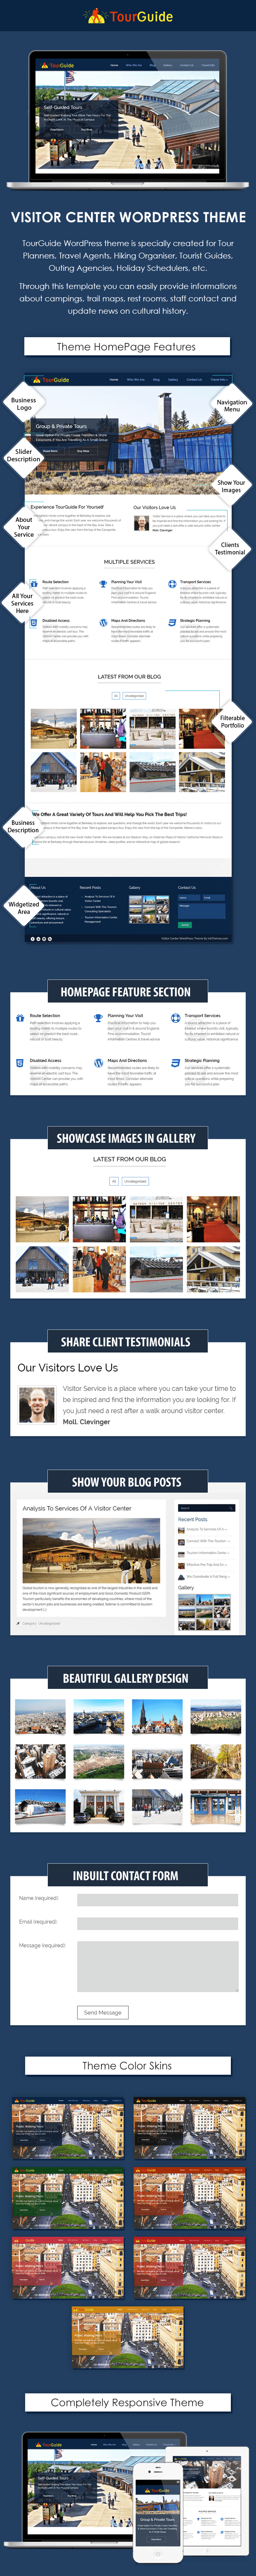 visitor-center-wordpress-theme